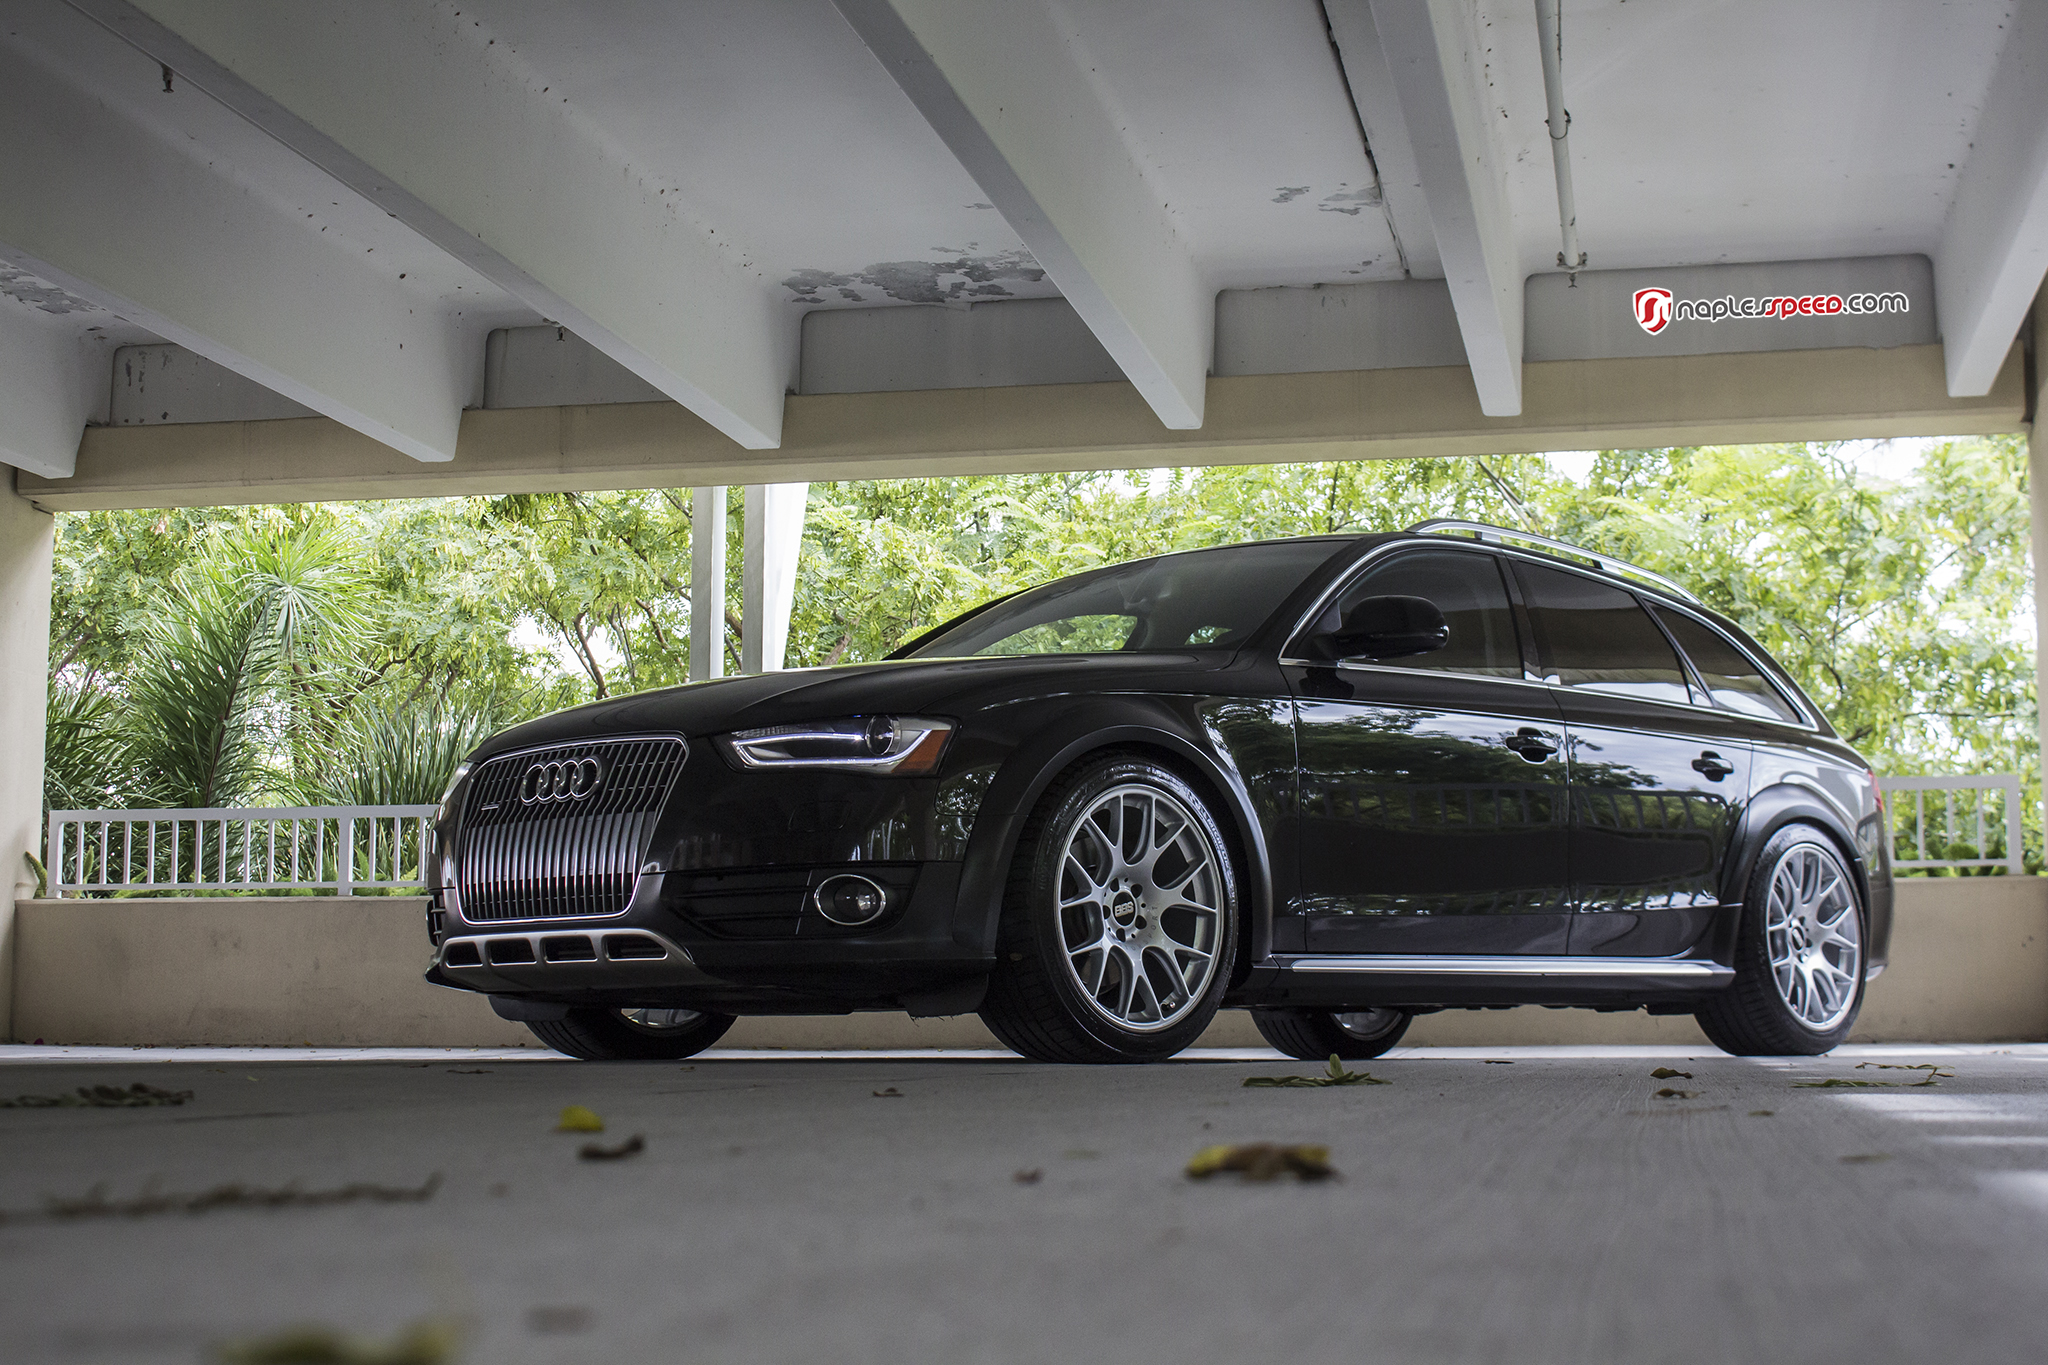 Audi Allroad with BBS wheels – Advanced Automotive Accessories